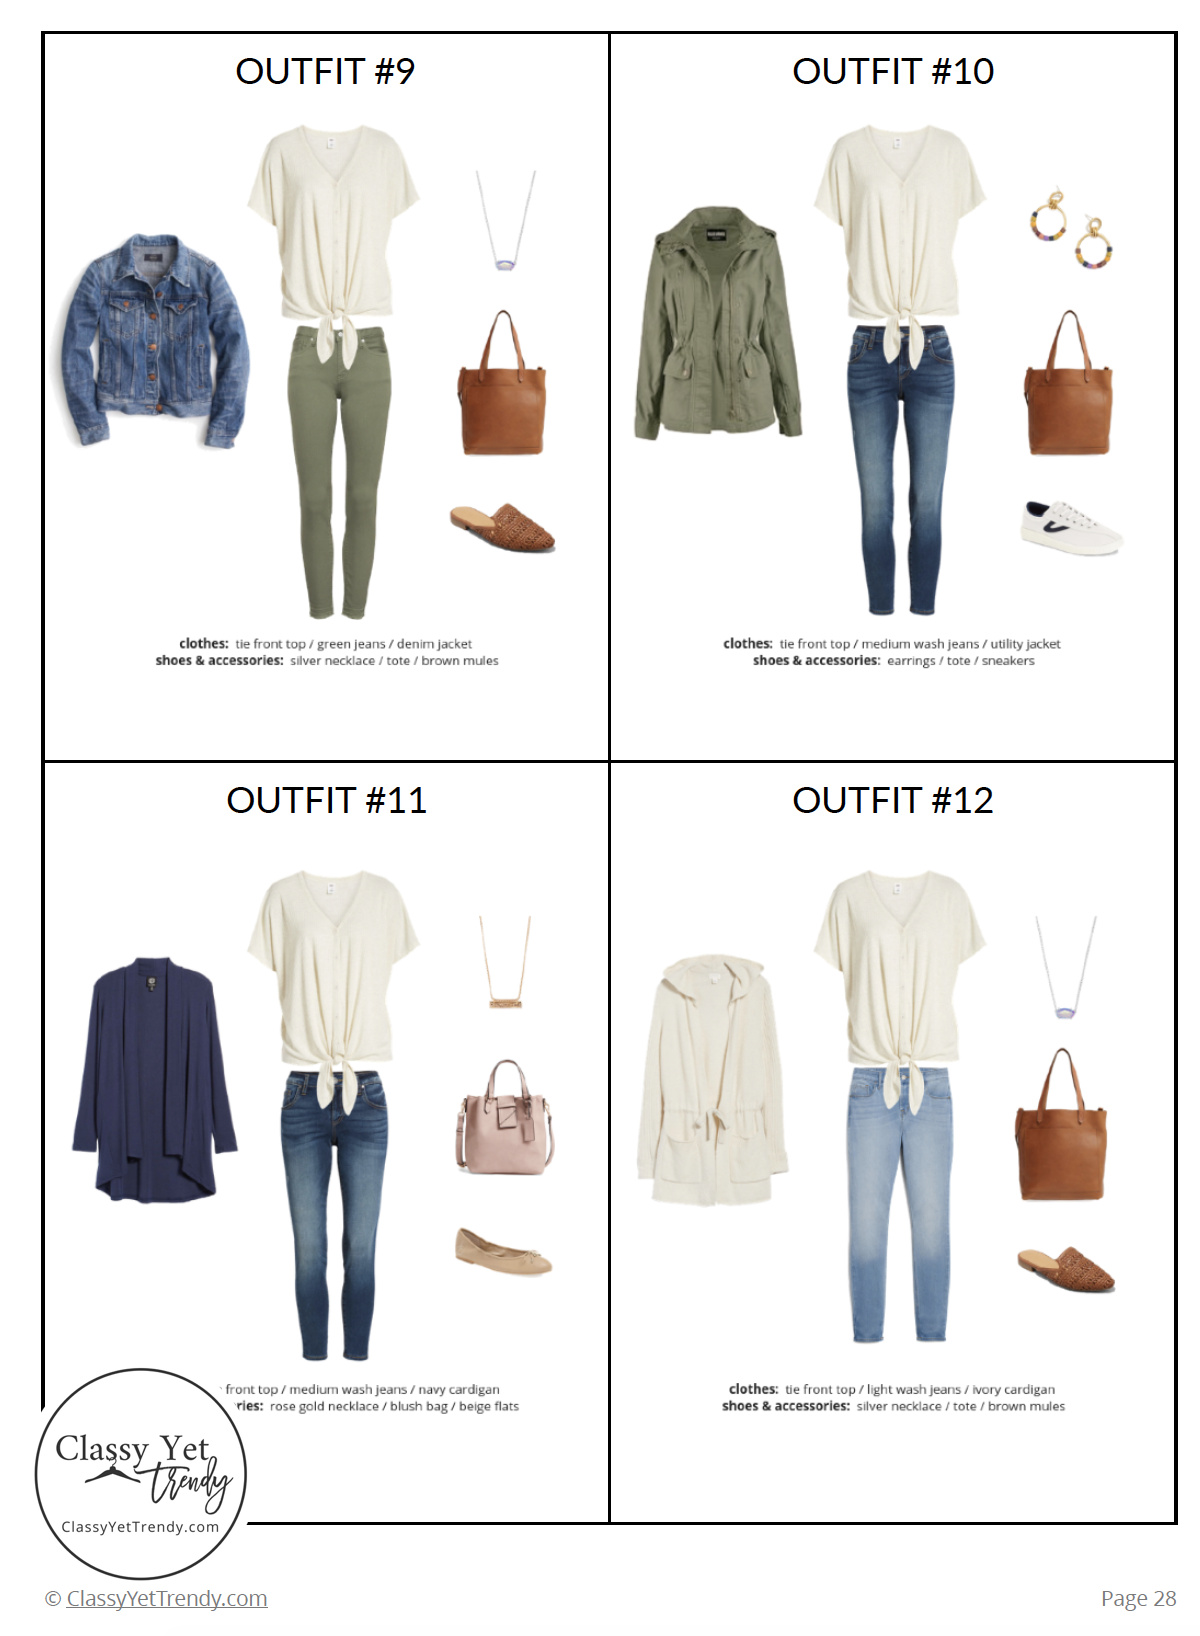 Stay At Home Mom Capsule Wardrobe Spring 2019 - page 28